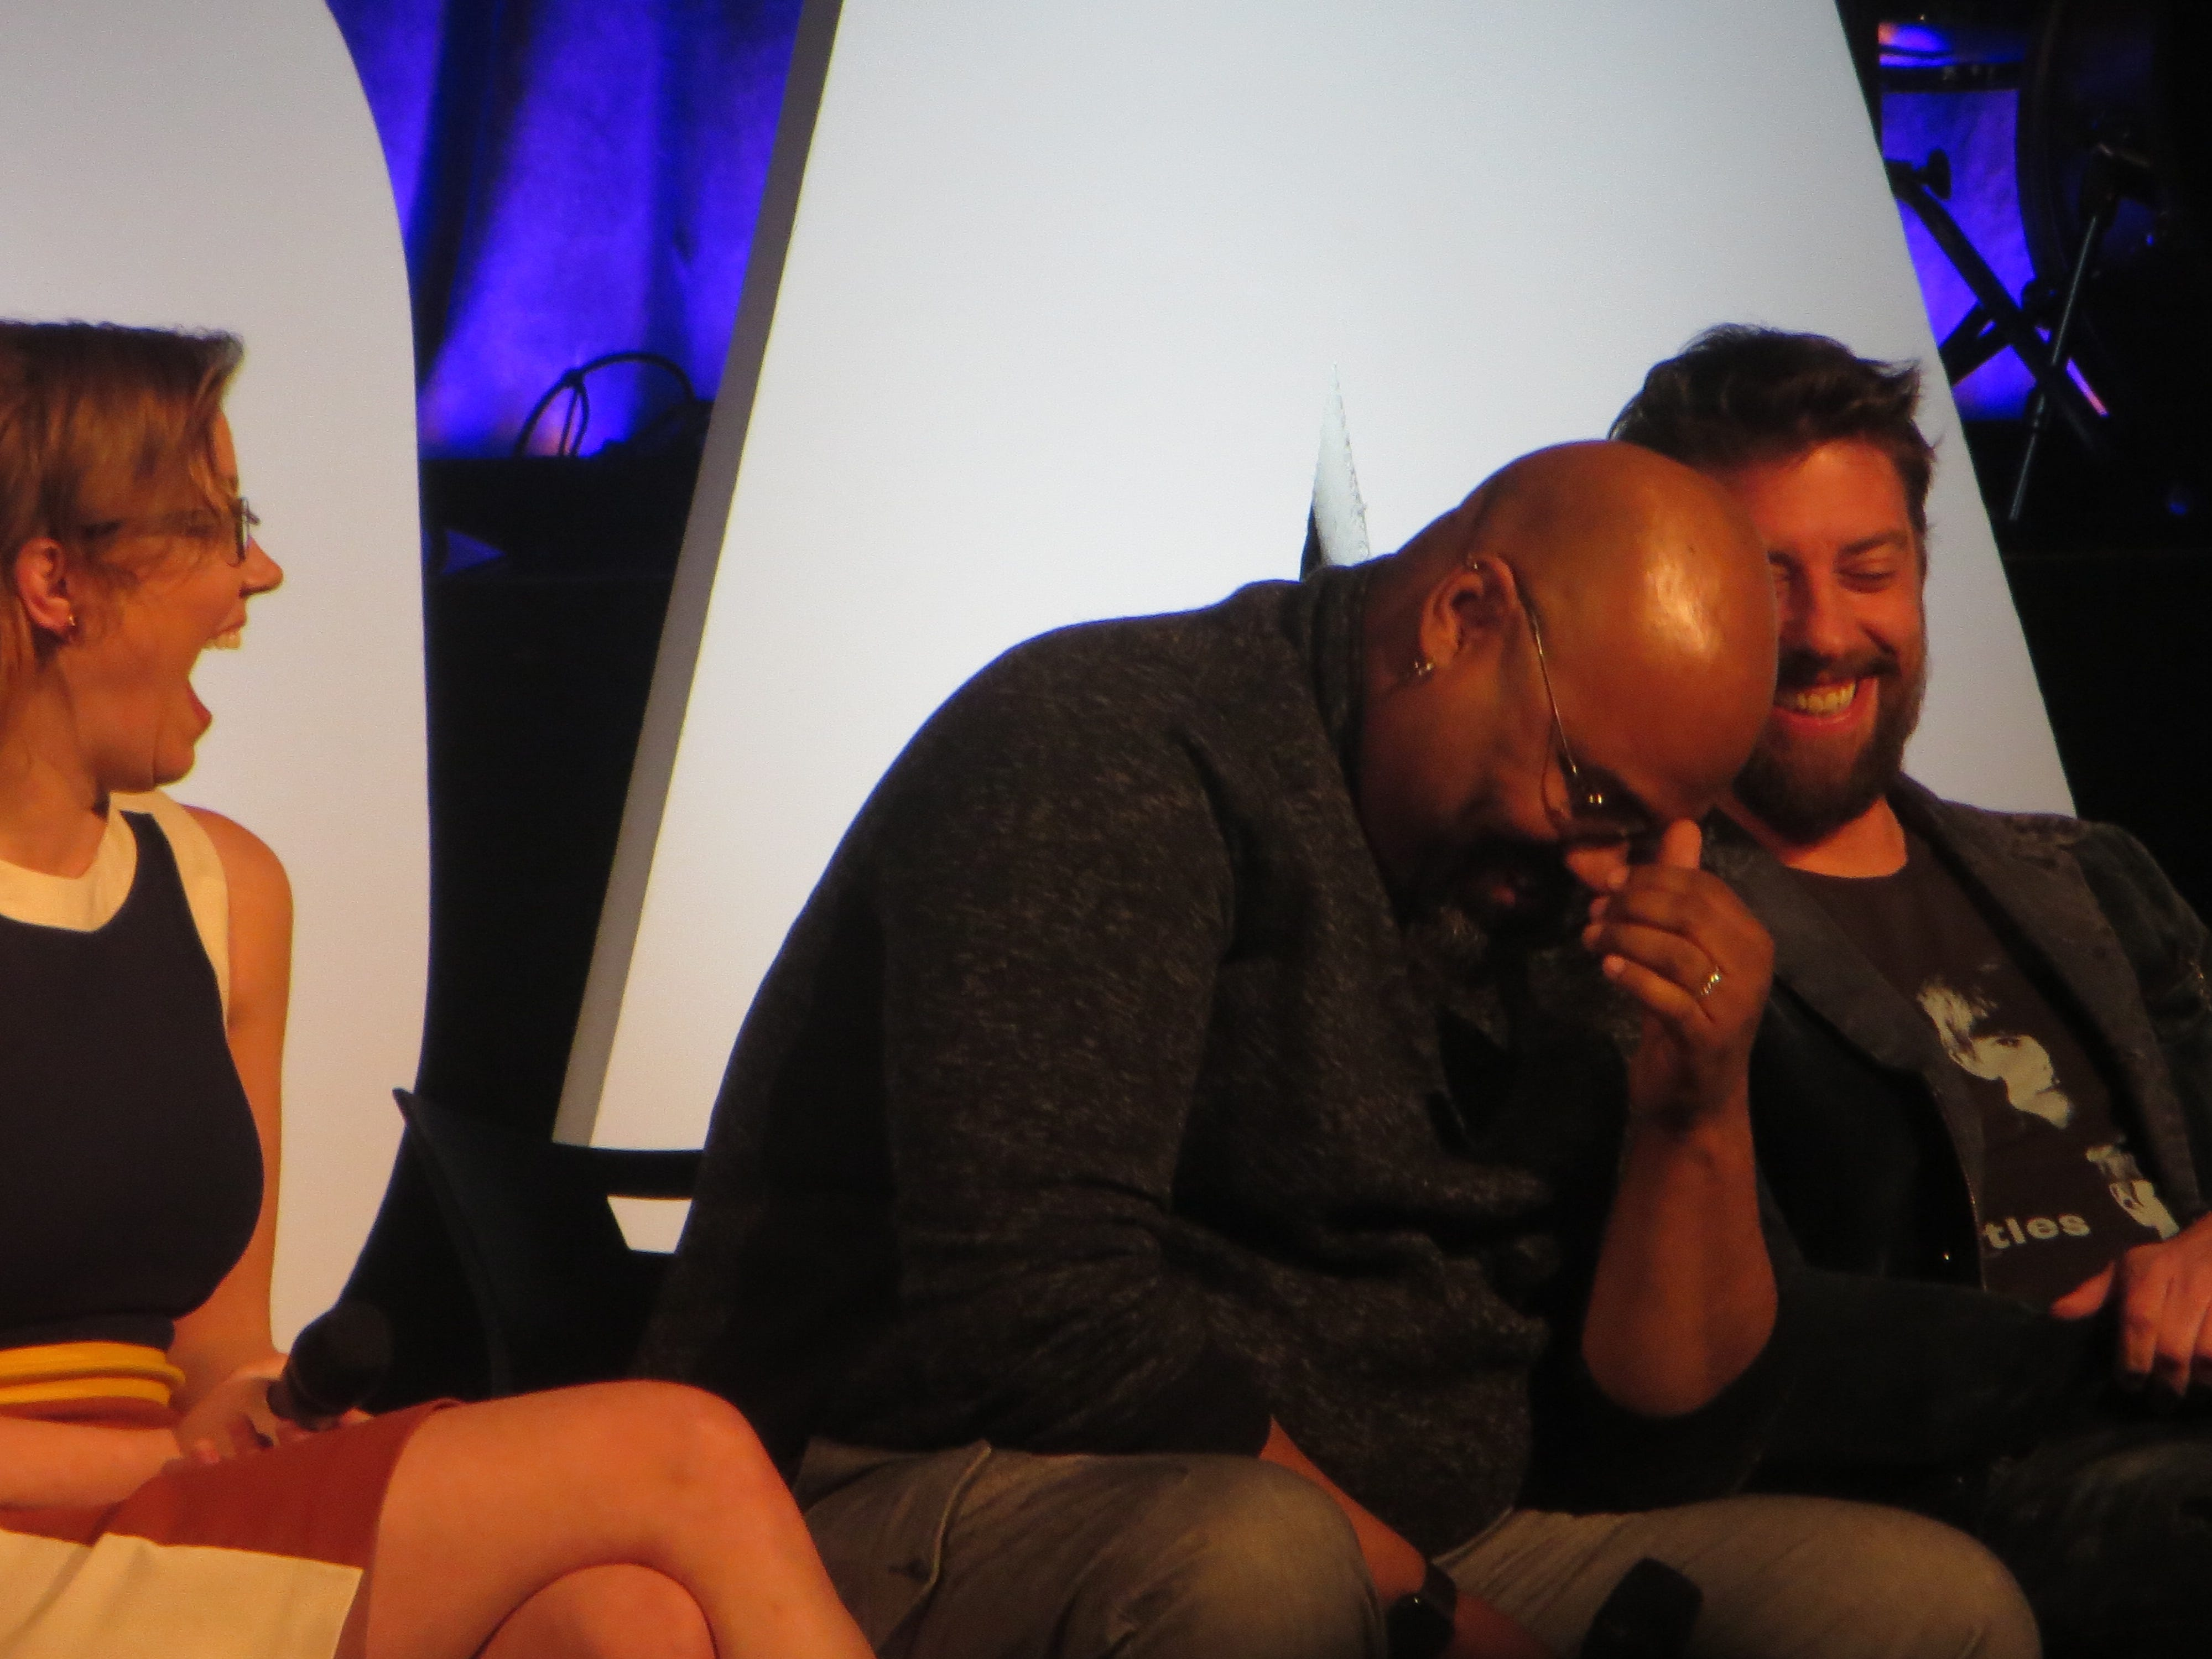 Patti Murin, James Monroe Iglehart and Christian Borle laugh during a Disney on Broadway at 25 panel at BroadwayCon 2019, held Jan. 11 to 13, 2019, at the New York Hilton Midtown in Manhattan.